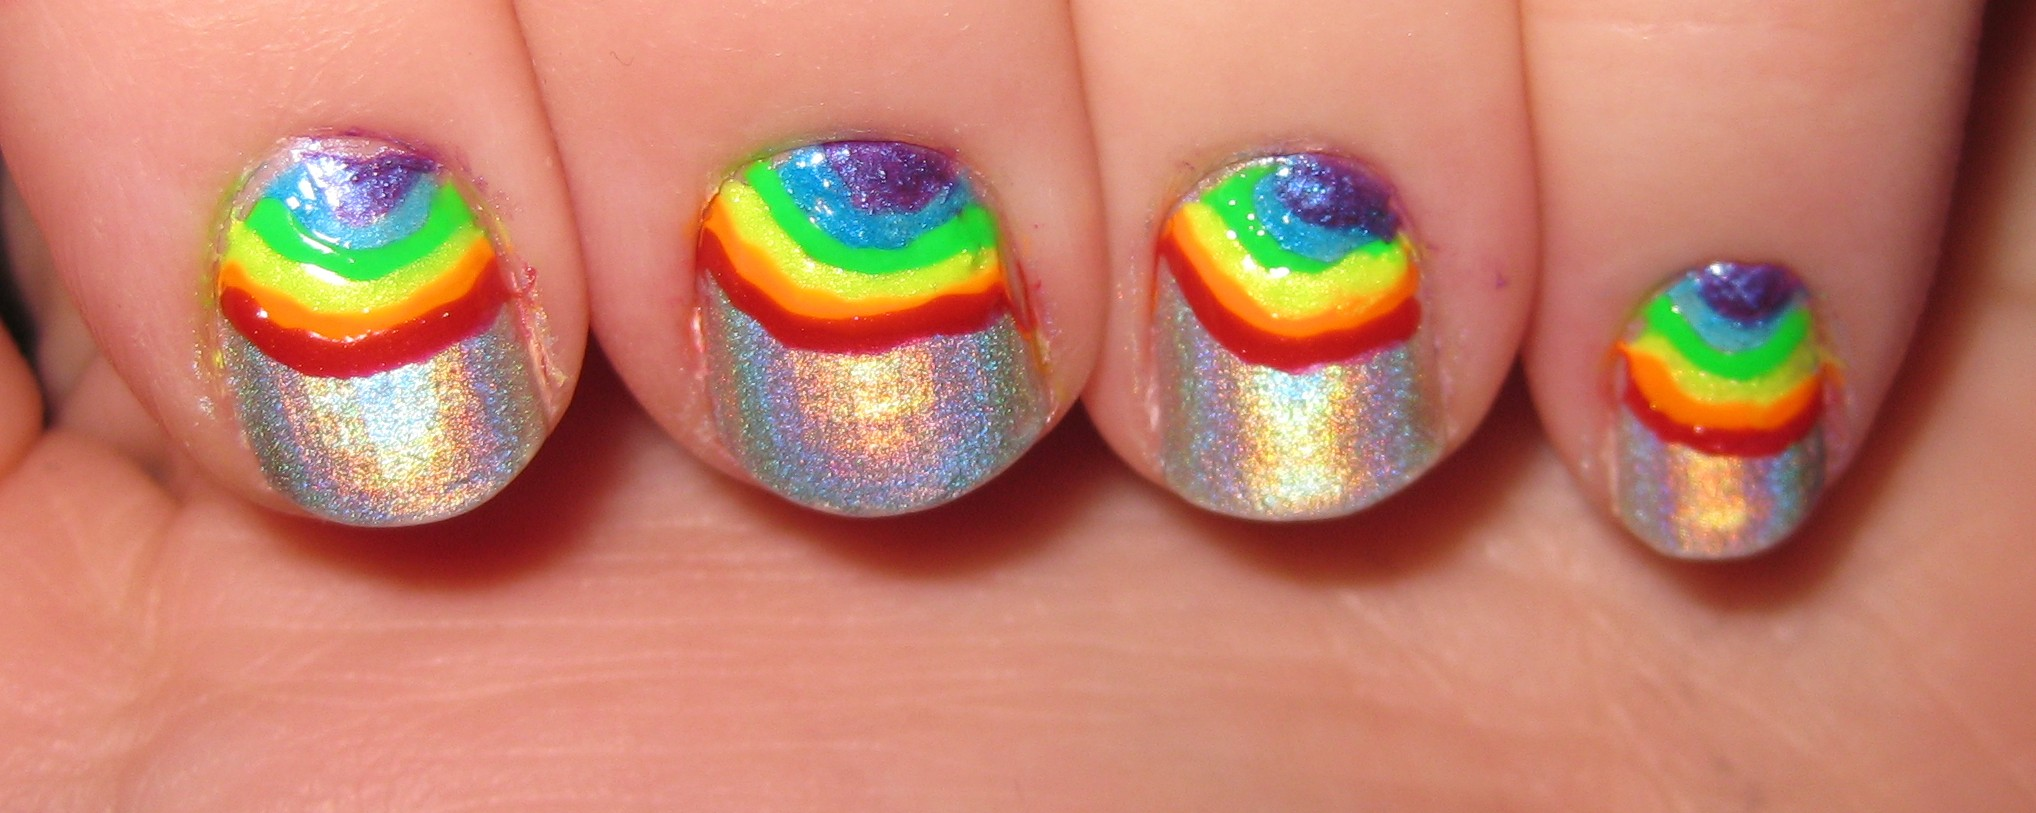 Rainbow Holographic Nails | Vintage or Tacky